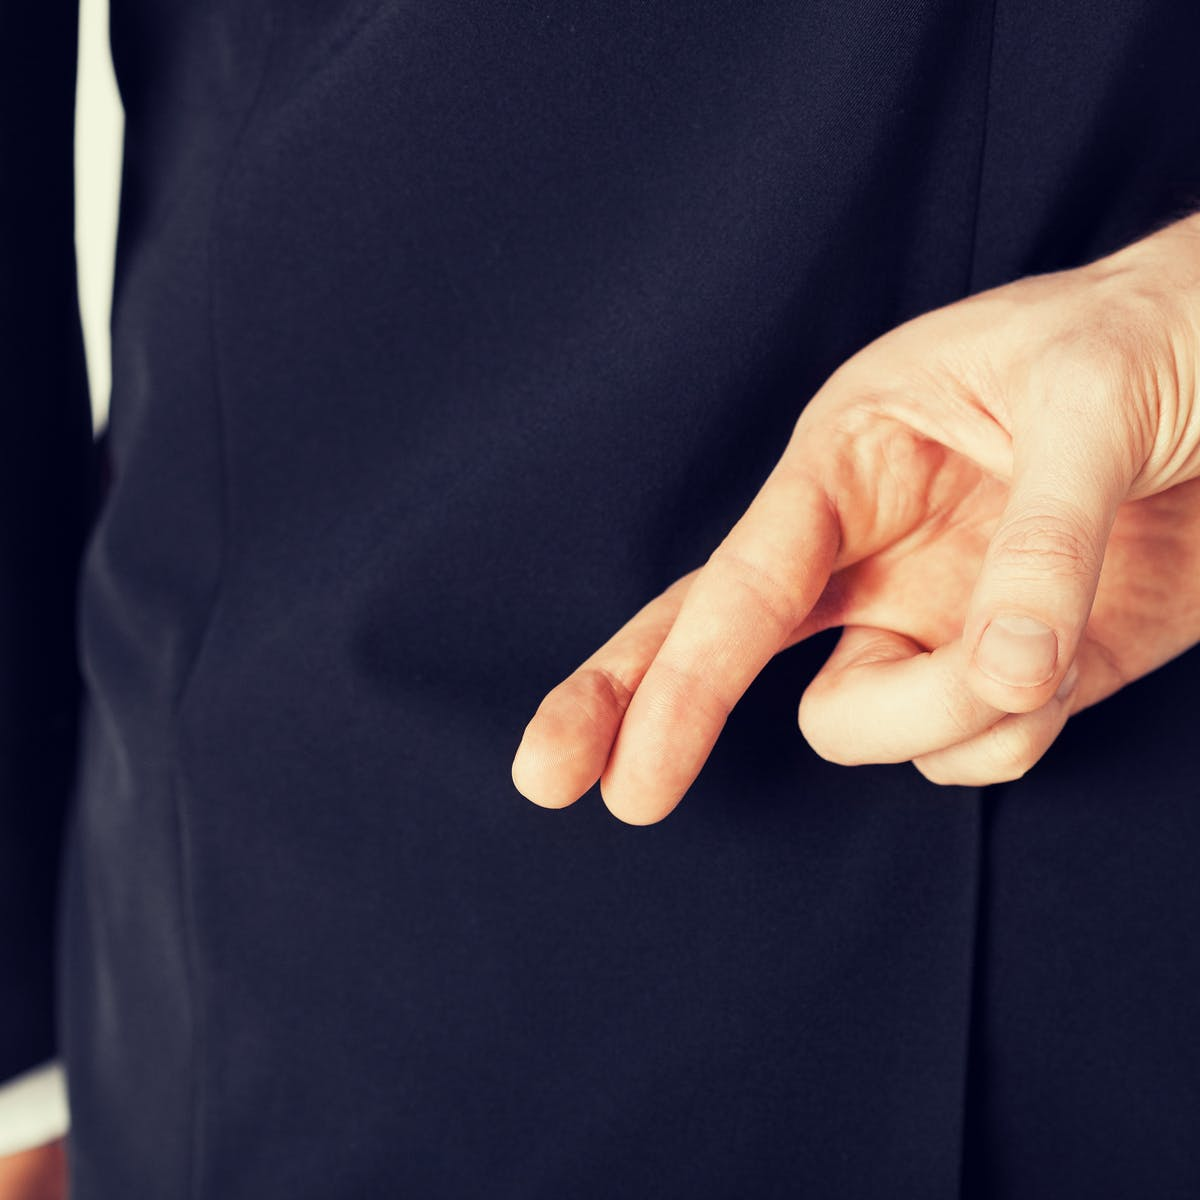 Corporate deception: where do we draw the line on lying at work?